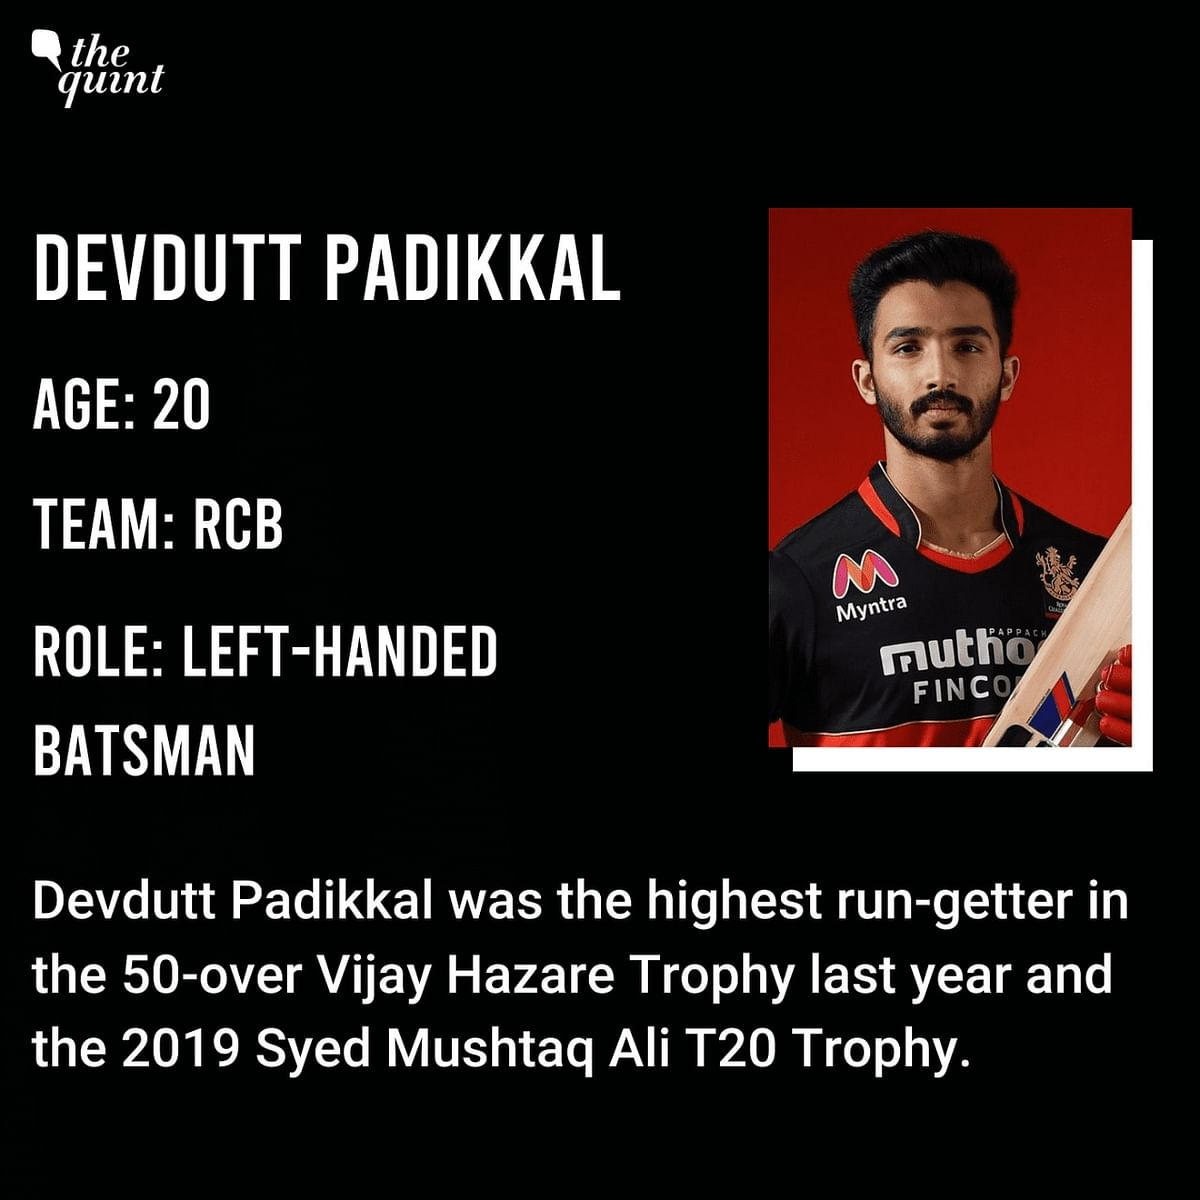 RCB's 20-Year-Old Opener Devdutt Padikkal Impresses on IPL Debut